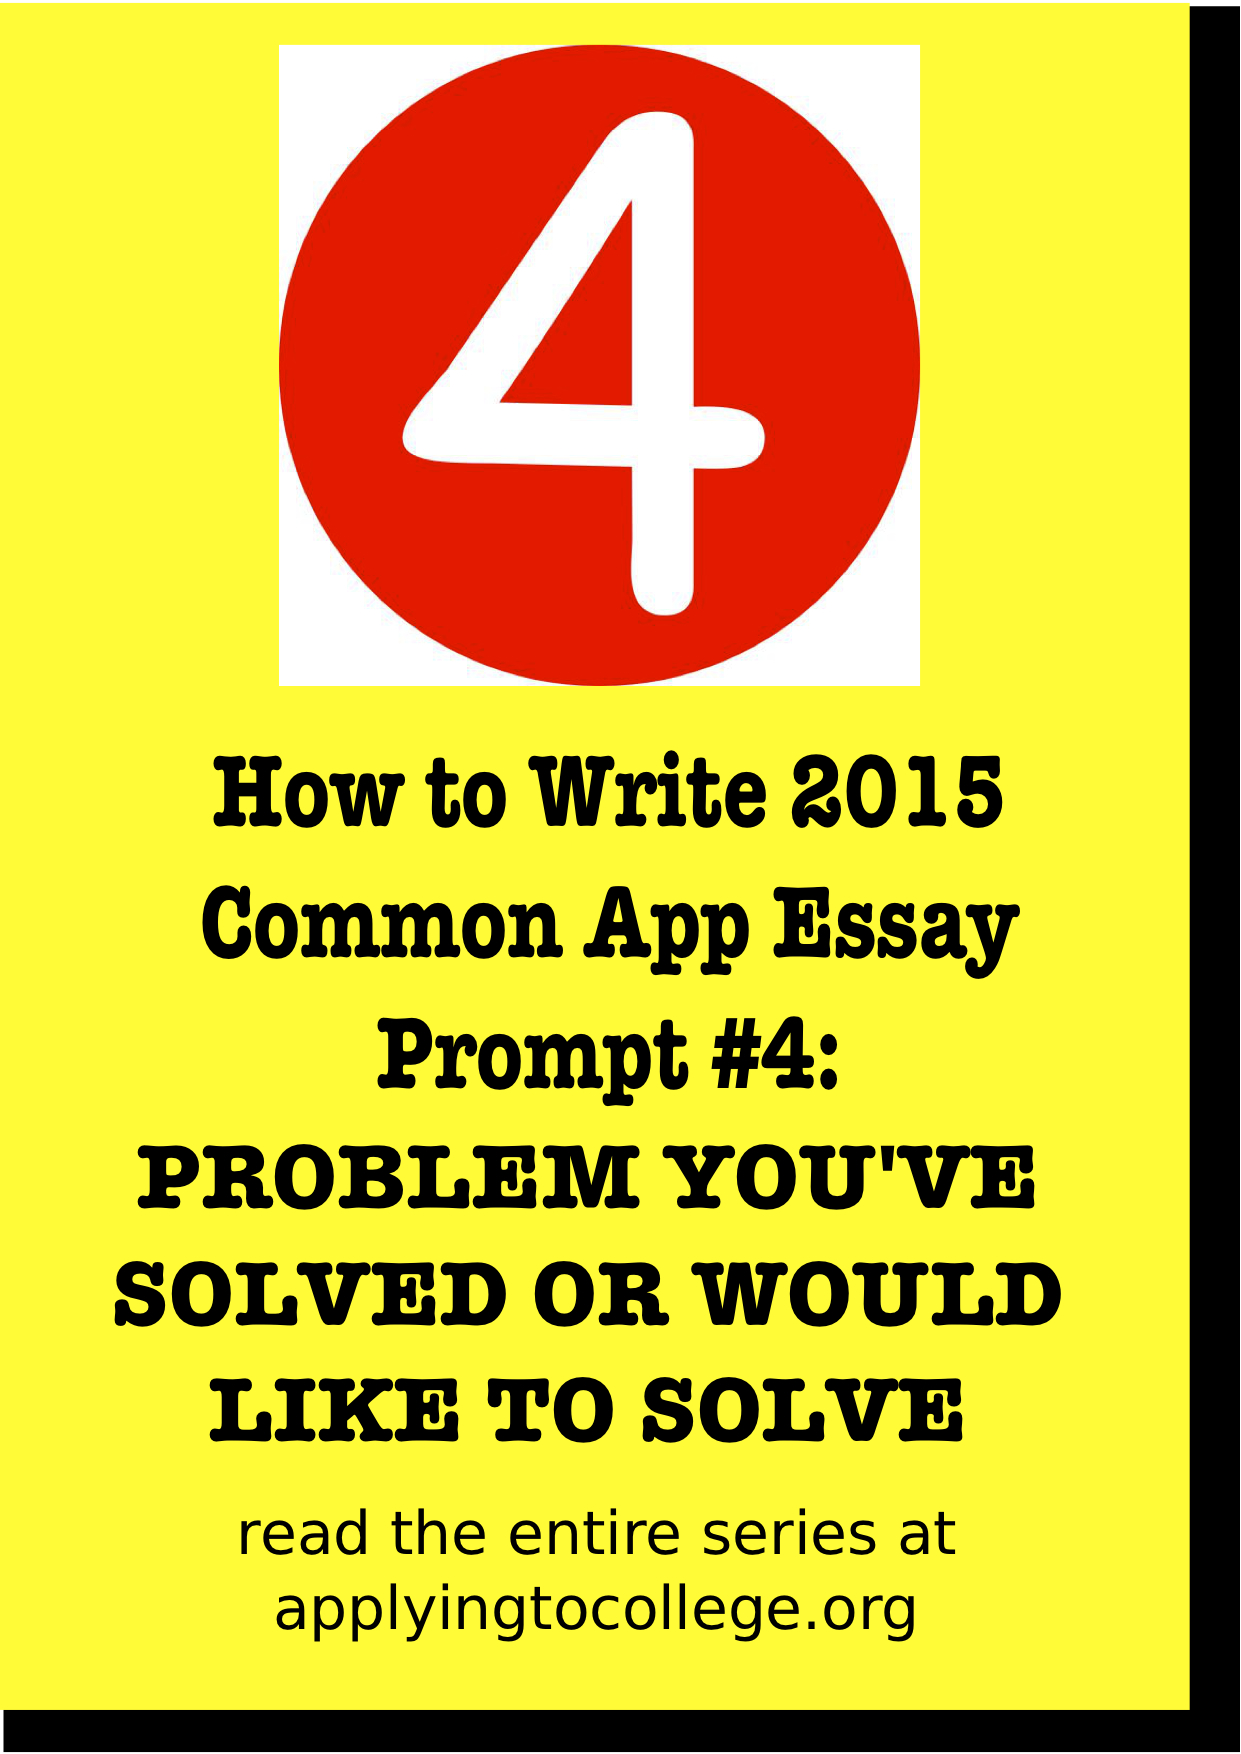 how to write common app essay describe a problem you ve solved how to write 2015 common application essay problem you ve solved or would like to